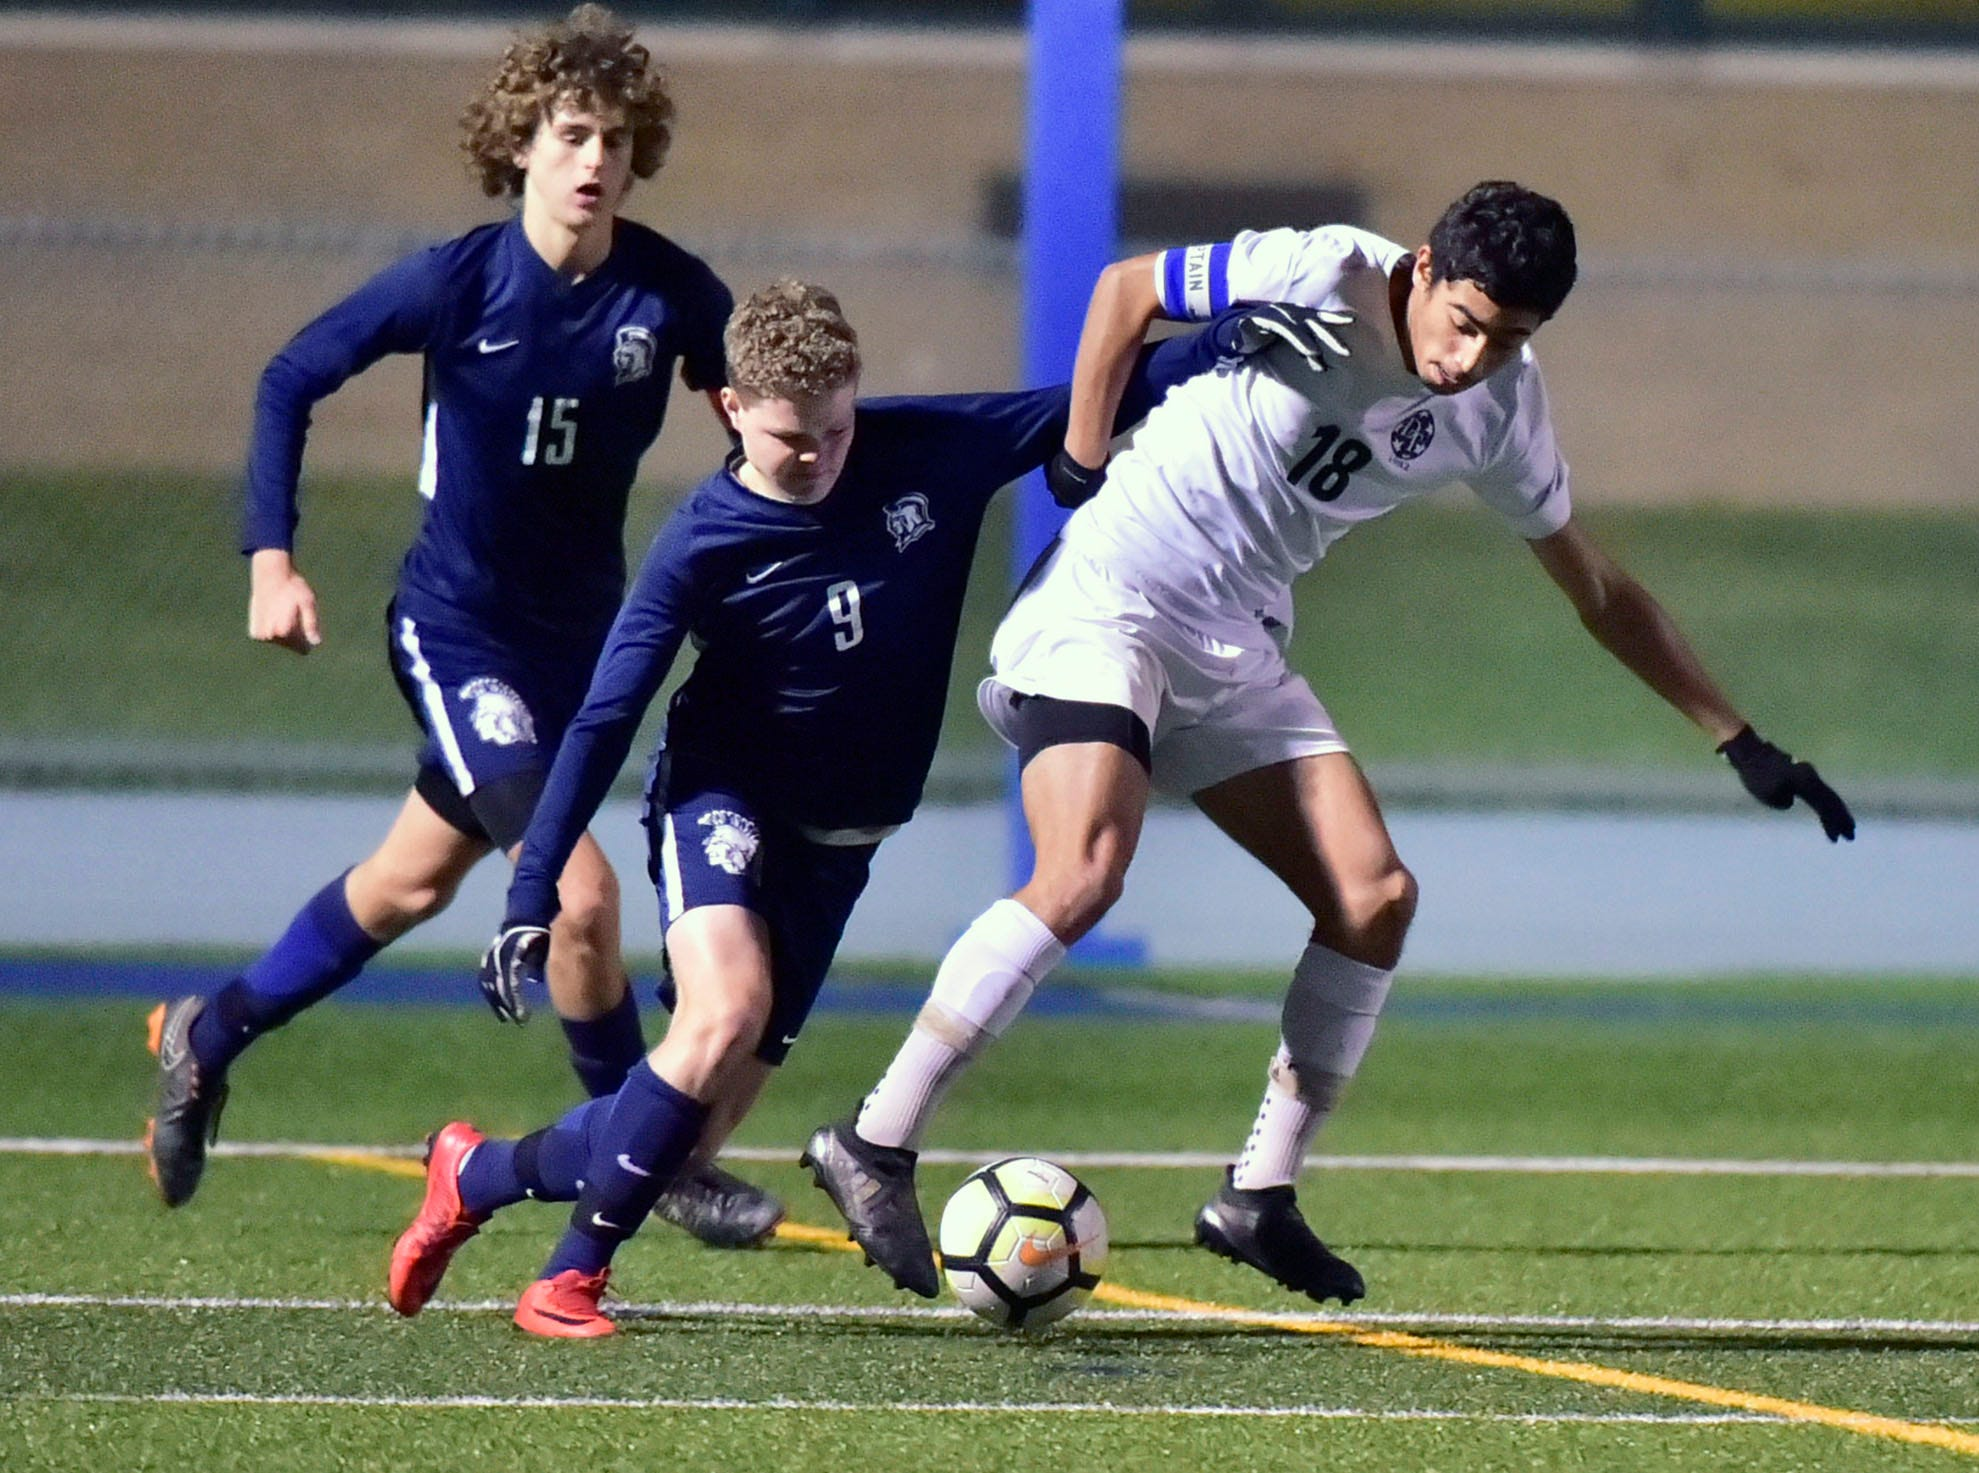 Dallastown's Leo Garcia (18) controls the ball ahead of Chambersburg Aaron Maynard (15) and Luke Mason (9). Chambersburg lost a first round D3 soccer match to Dallastown 2-1 on Tuesday, Oct. 23, 2018.